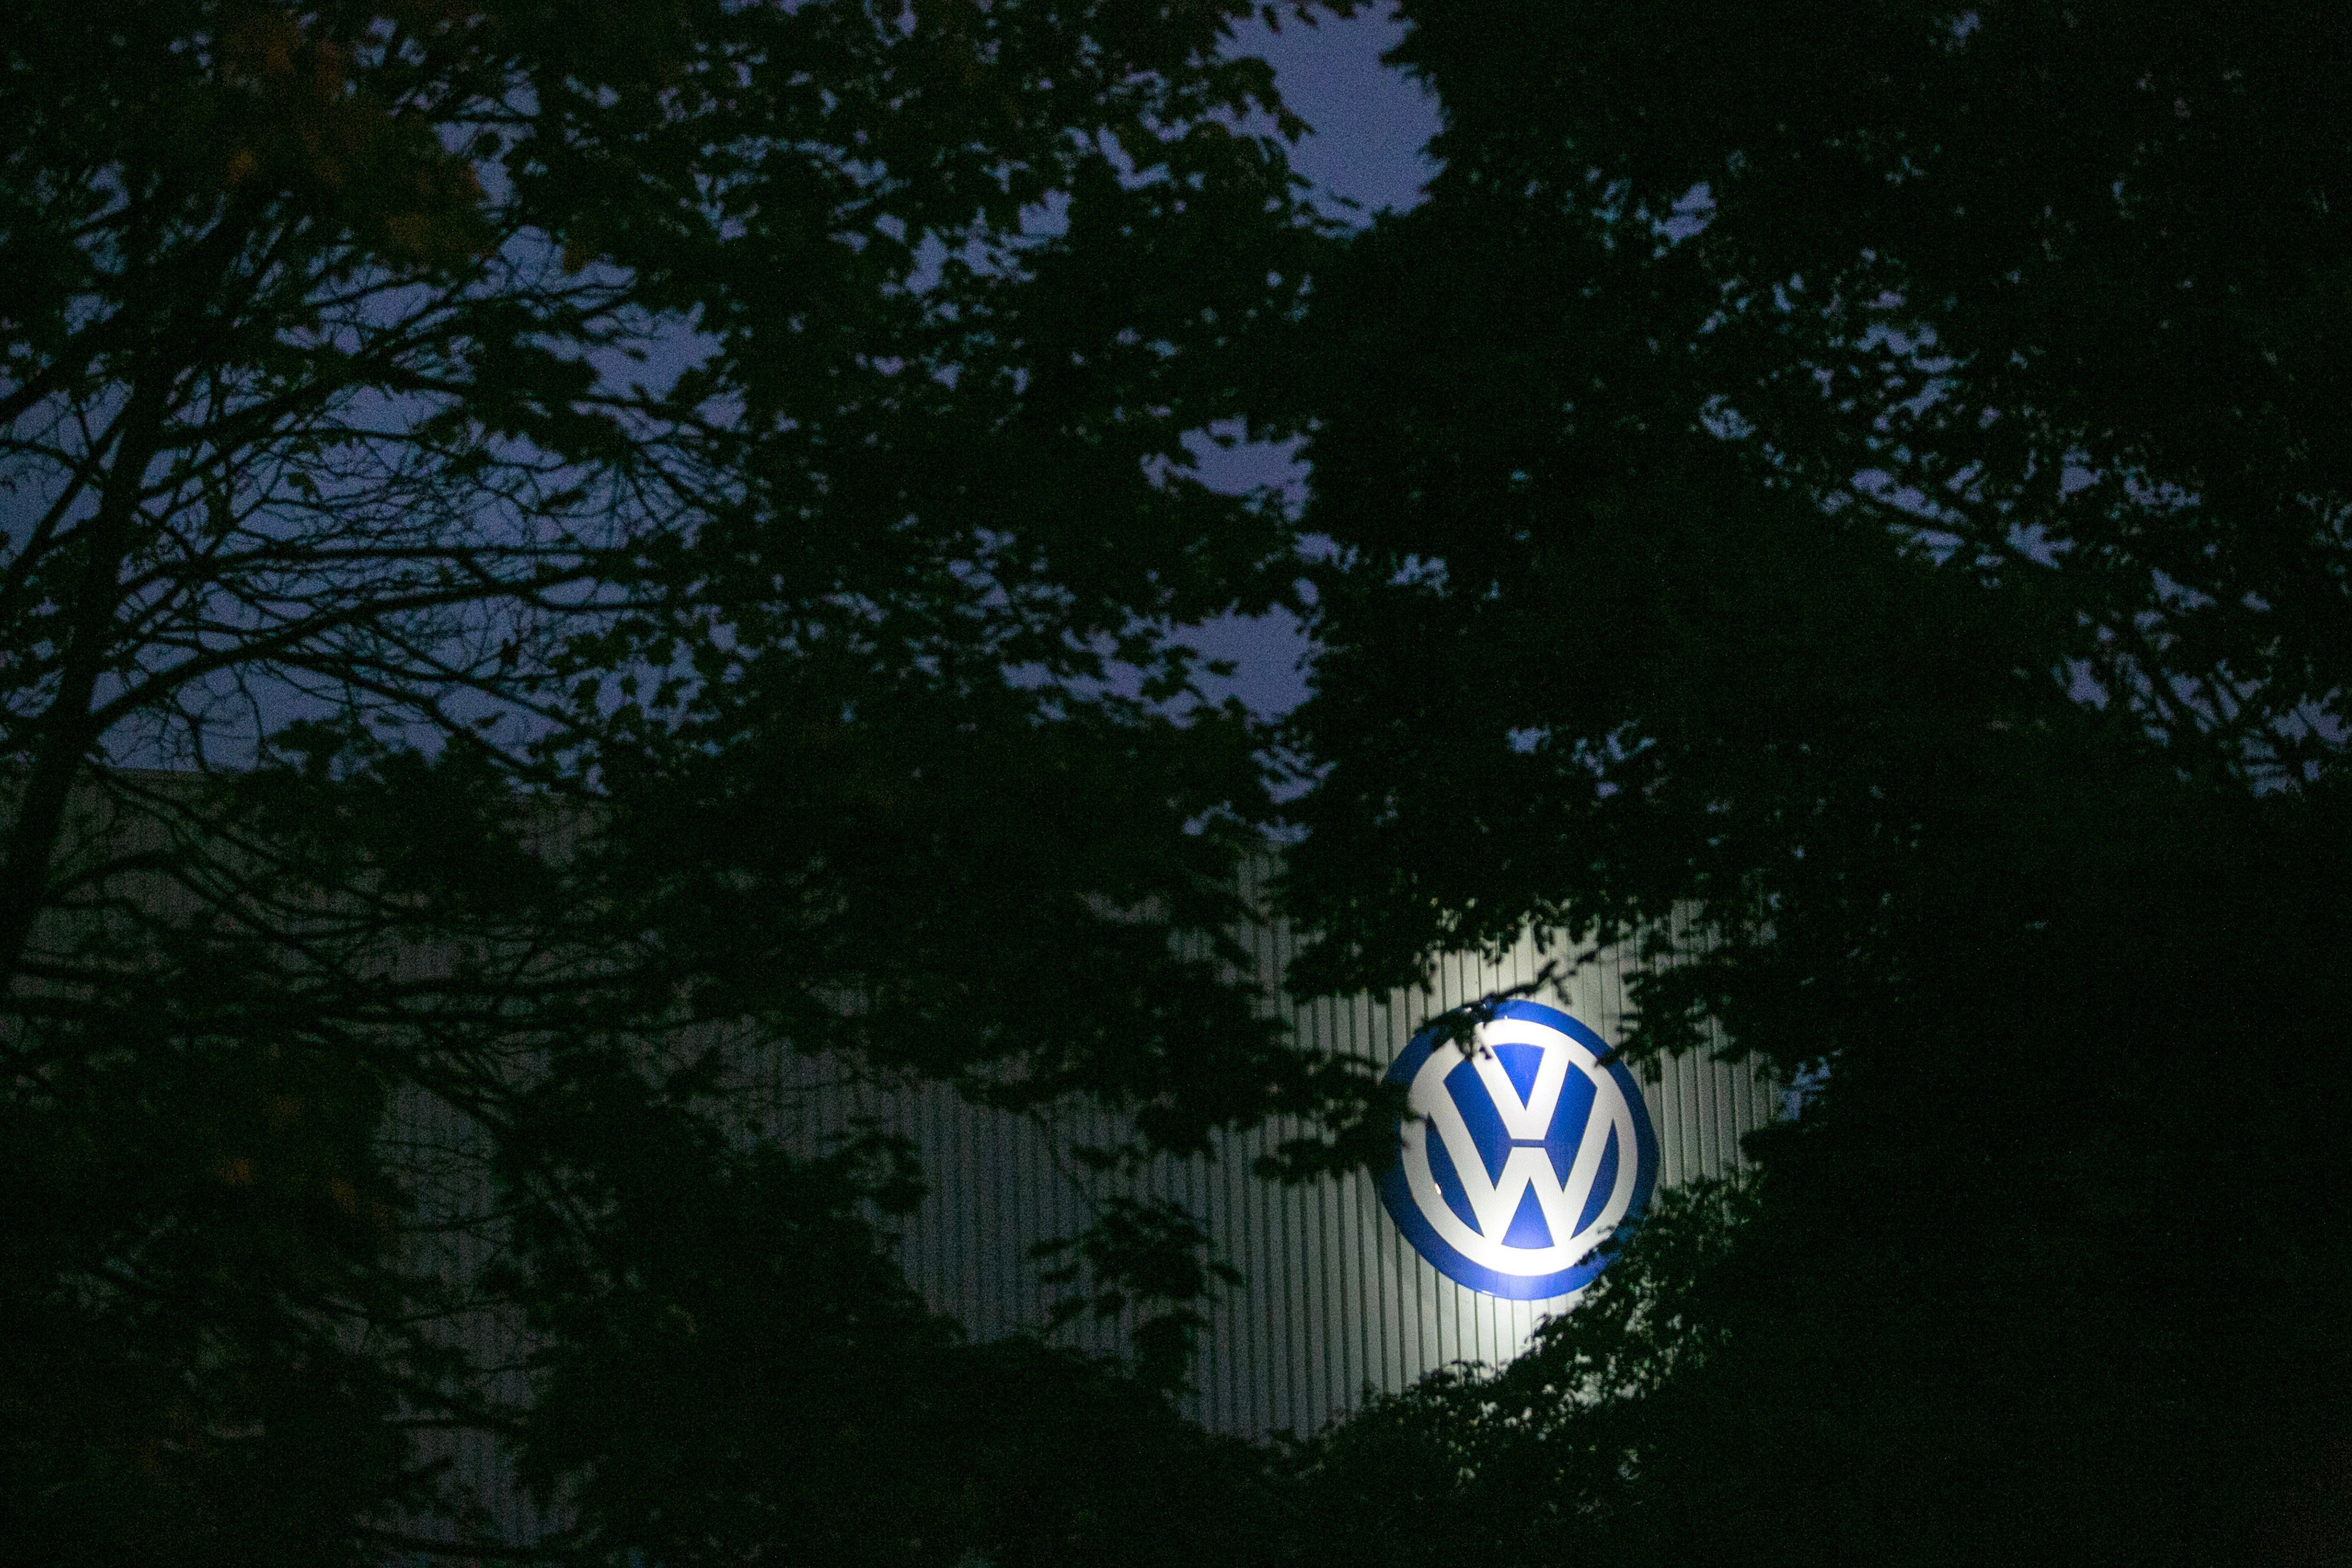 The Volkswagen (VW) logo sits illuminated on the exterior of the Volkswagen AG factory at night in Braunschweig, Germany, on Thursday, Oct. 22, 2015. The towns that became synonymous with Volkswagen AG's rise to the pinnacle of the auto industry are feeling the pinch of the diesel-emissions scandal, freezing spending on projects such as playgrounds amid the carmaker's abrupt fall from grace. Photographer: Krisztian Bocsi/Bloomberg via Getty Images